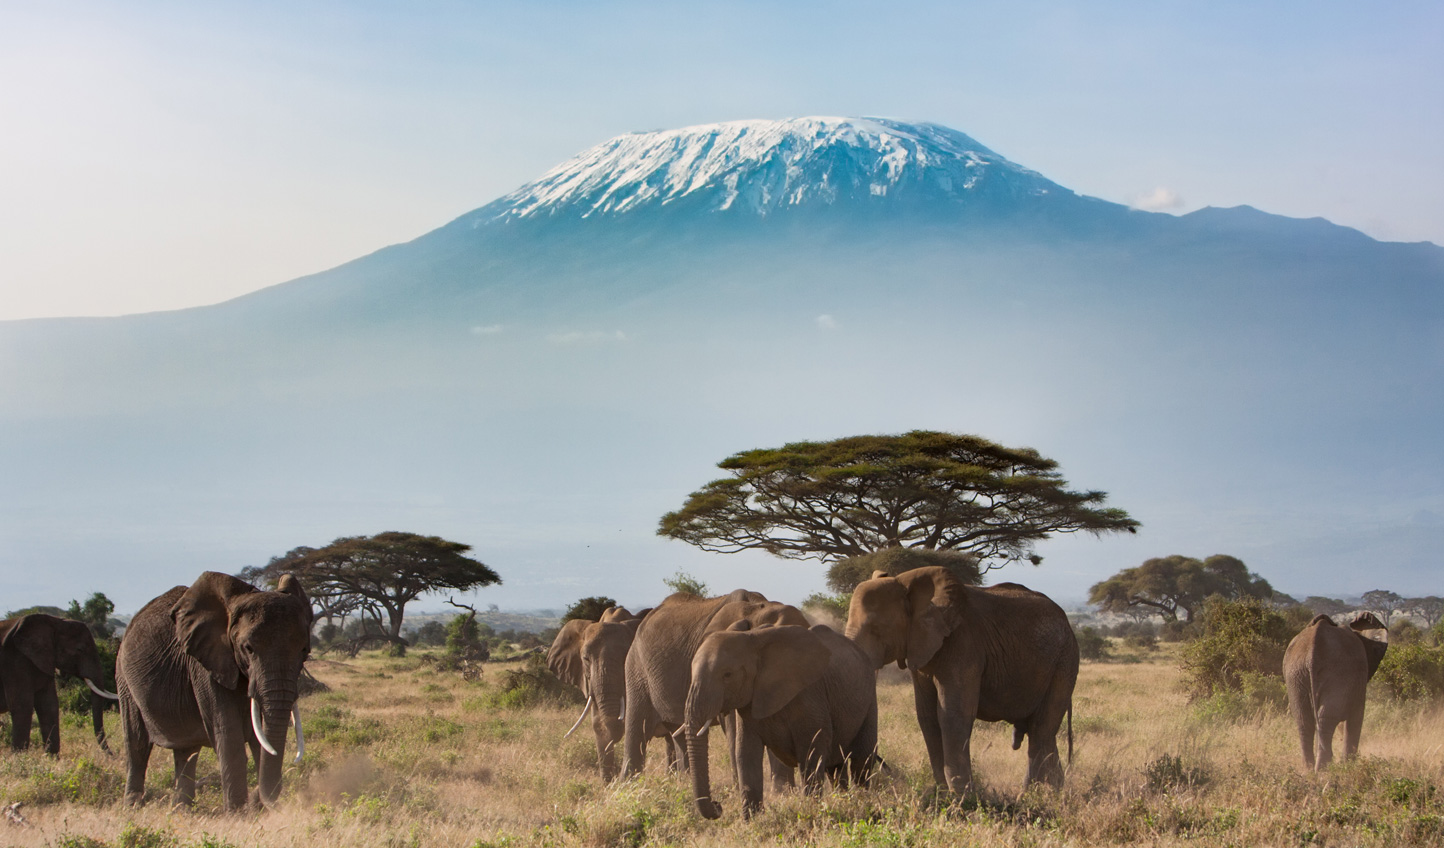 Challenge meets reward on an exhilarating Mt Kilimanjaro hike